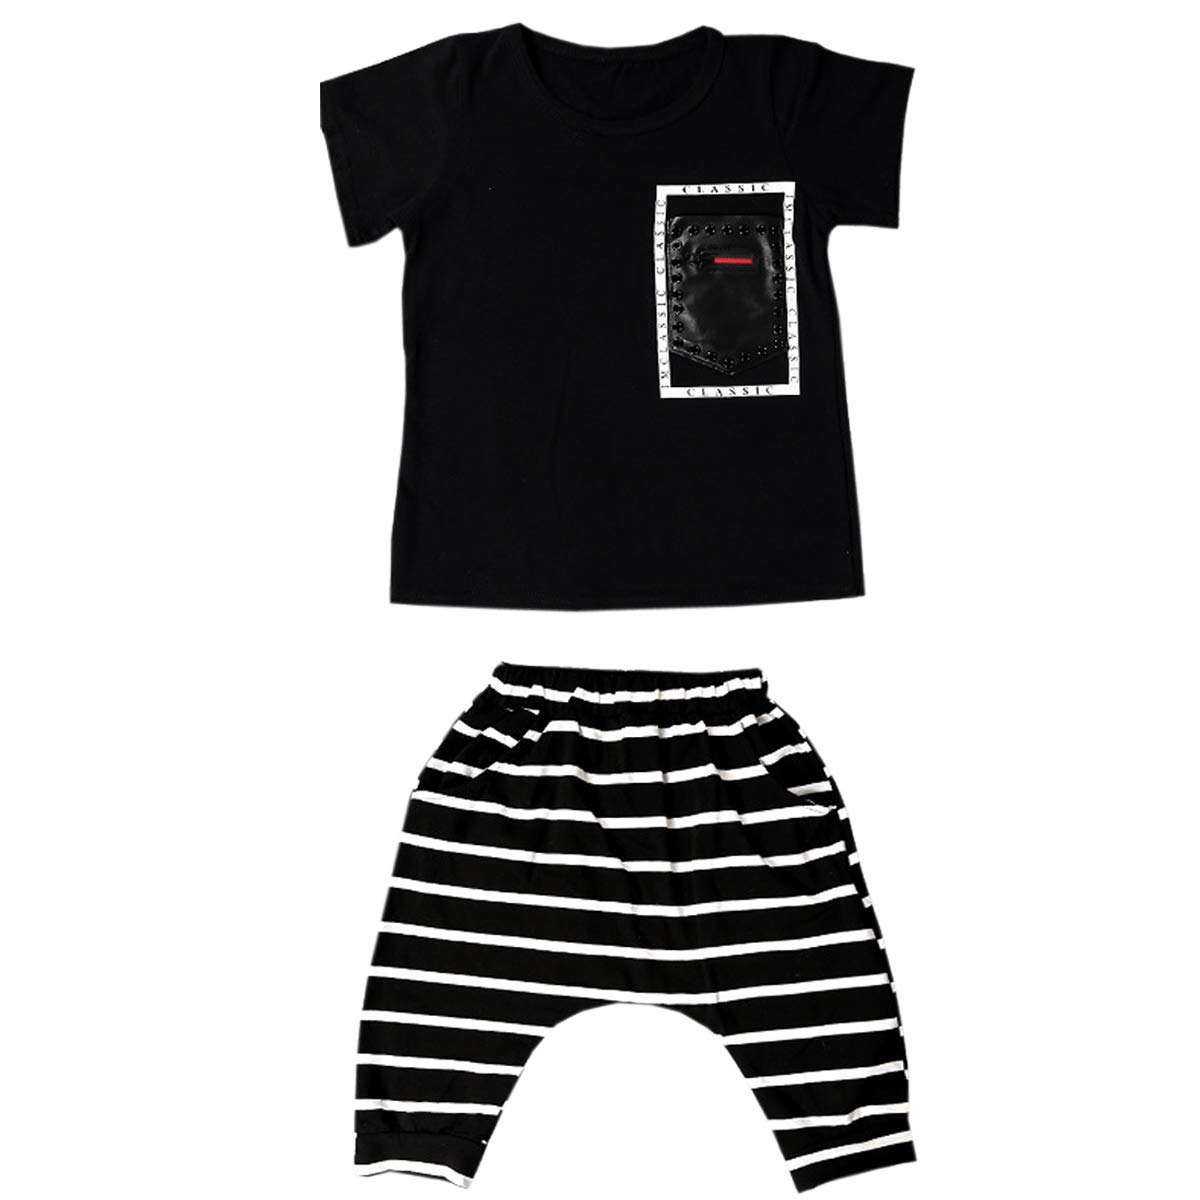 CASUALBOYS 2 Piece Boy T-Shirt + Striped Pants Loose Casual Hip-hop Performance Clothing Black